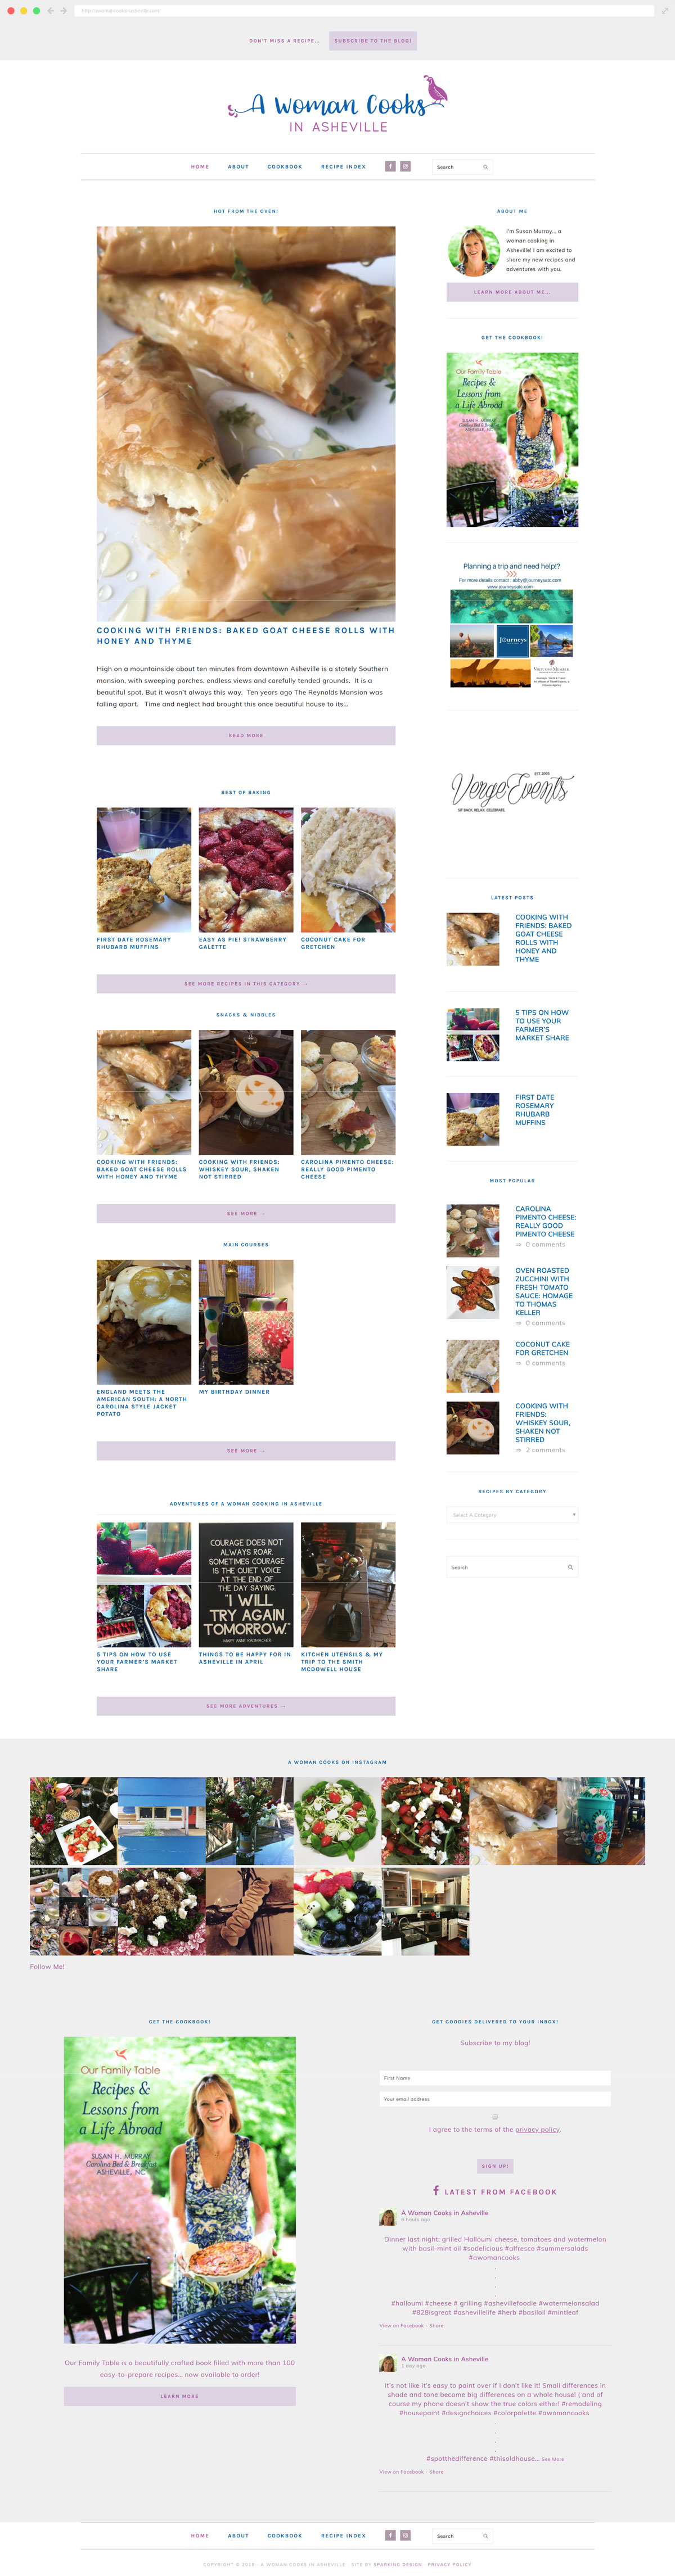 A Woman Cooks website example